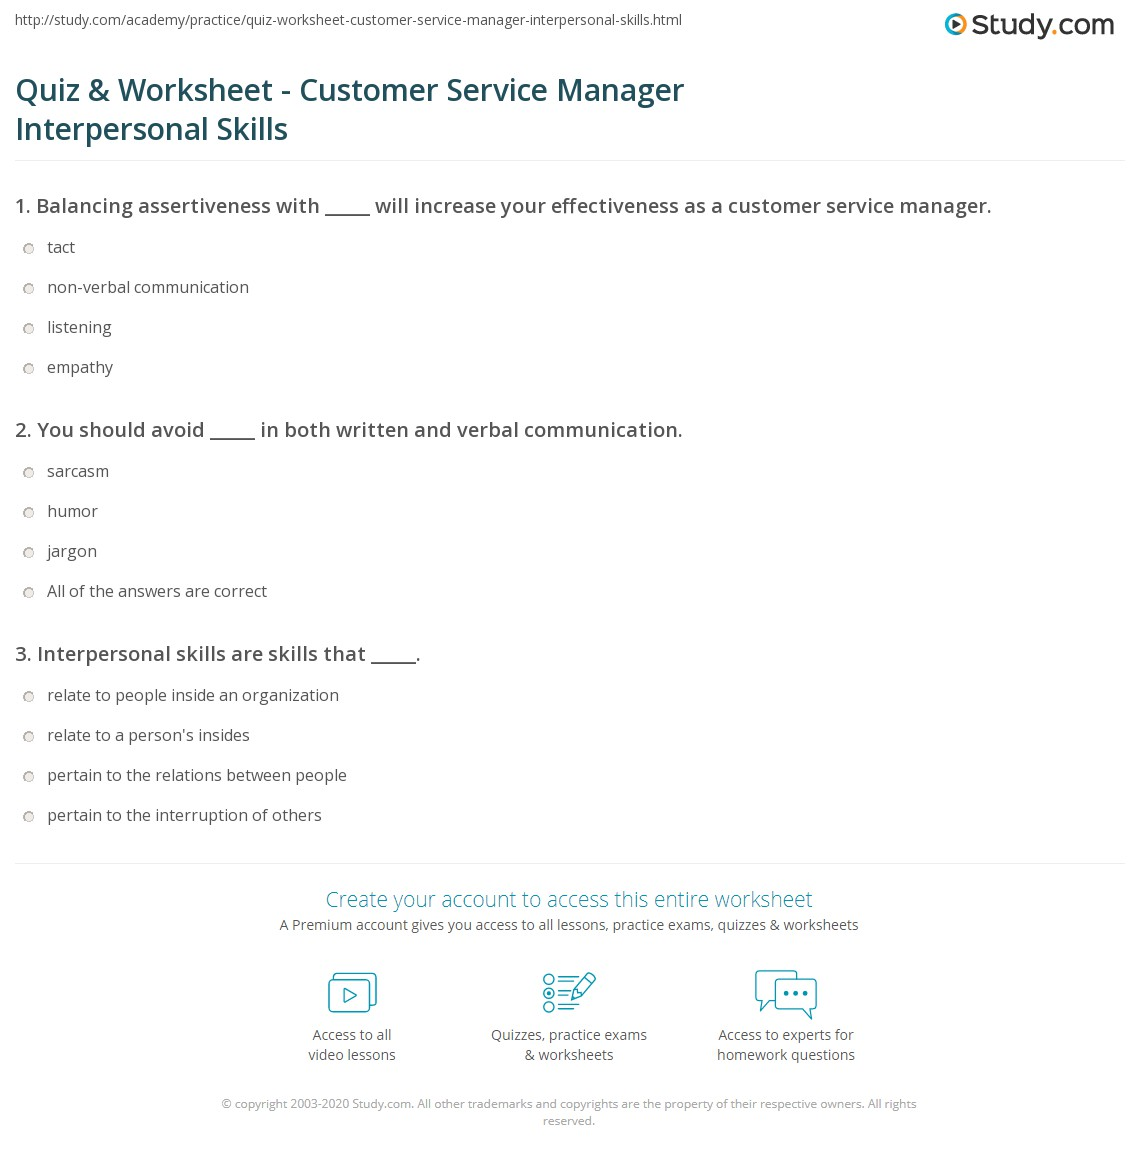 quiz worksheet customer service manager interpersonal skills print interpersonal skills for customer service managers worksheet